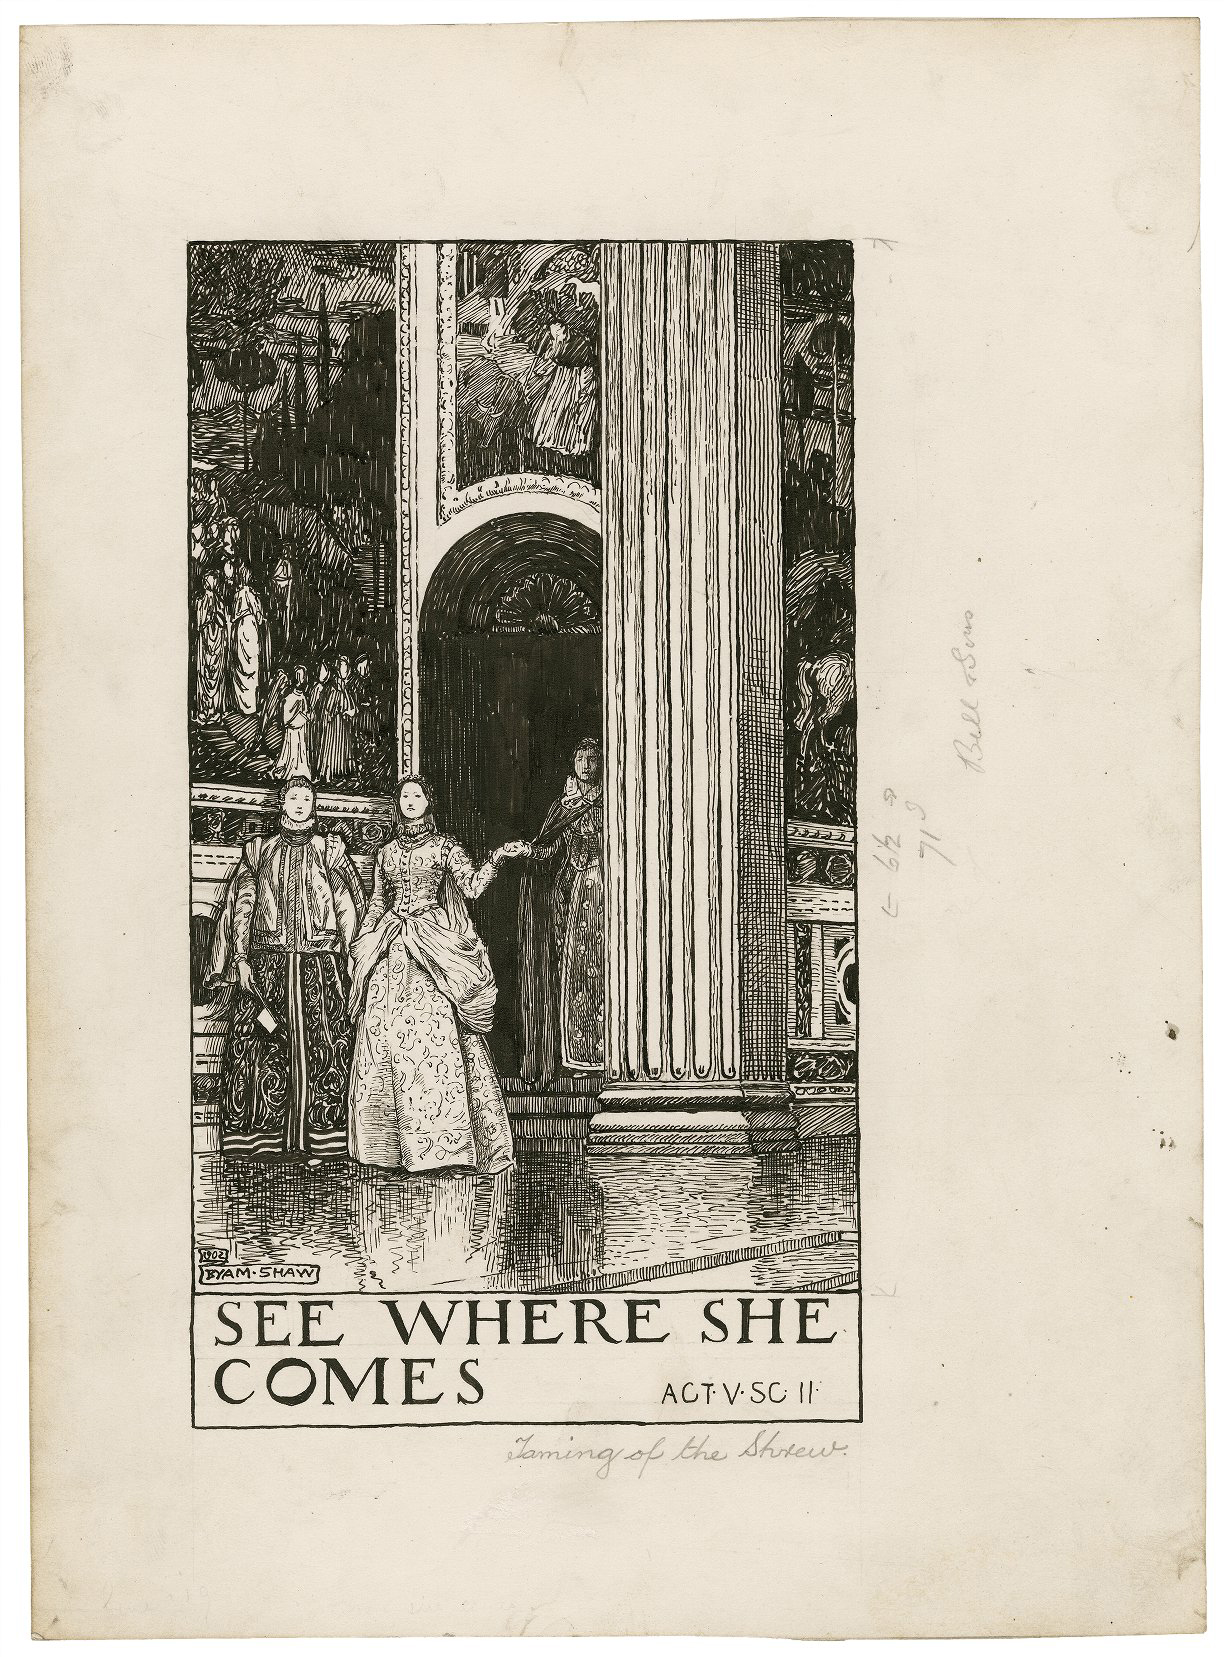 Byam Shaw's illustrations for The Taming of the Shrew, c. 1900